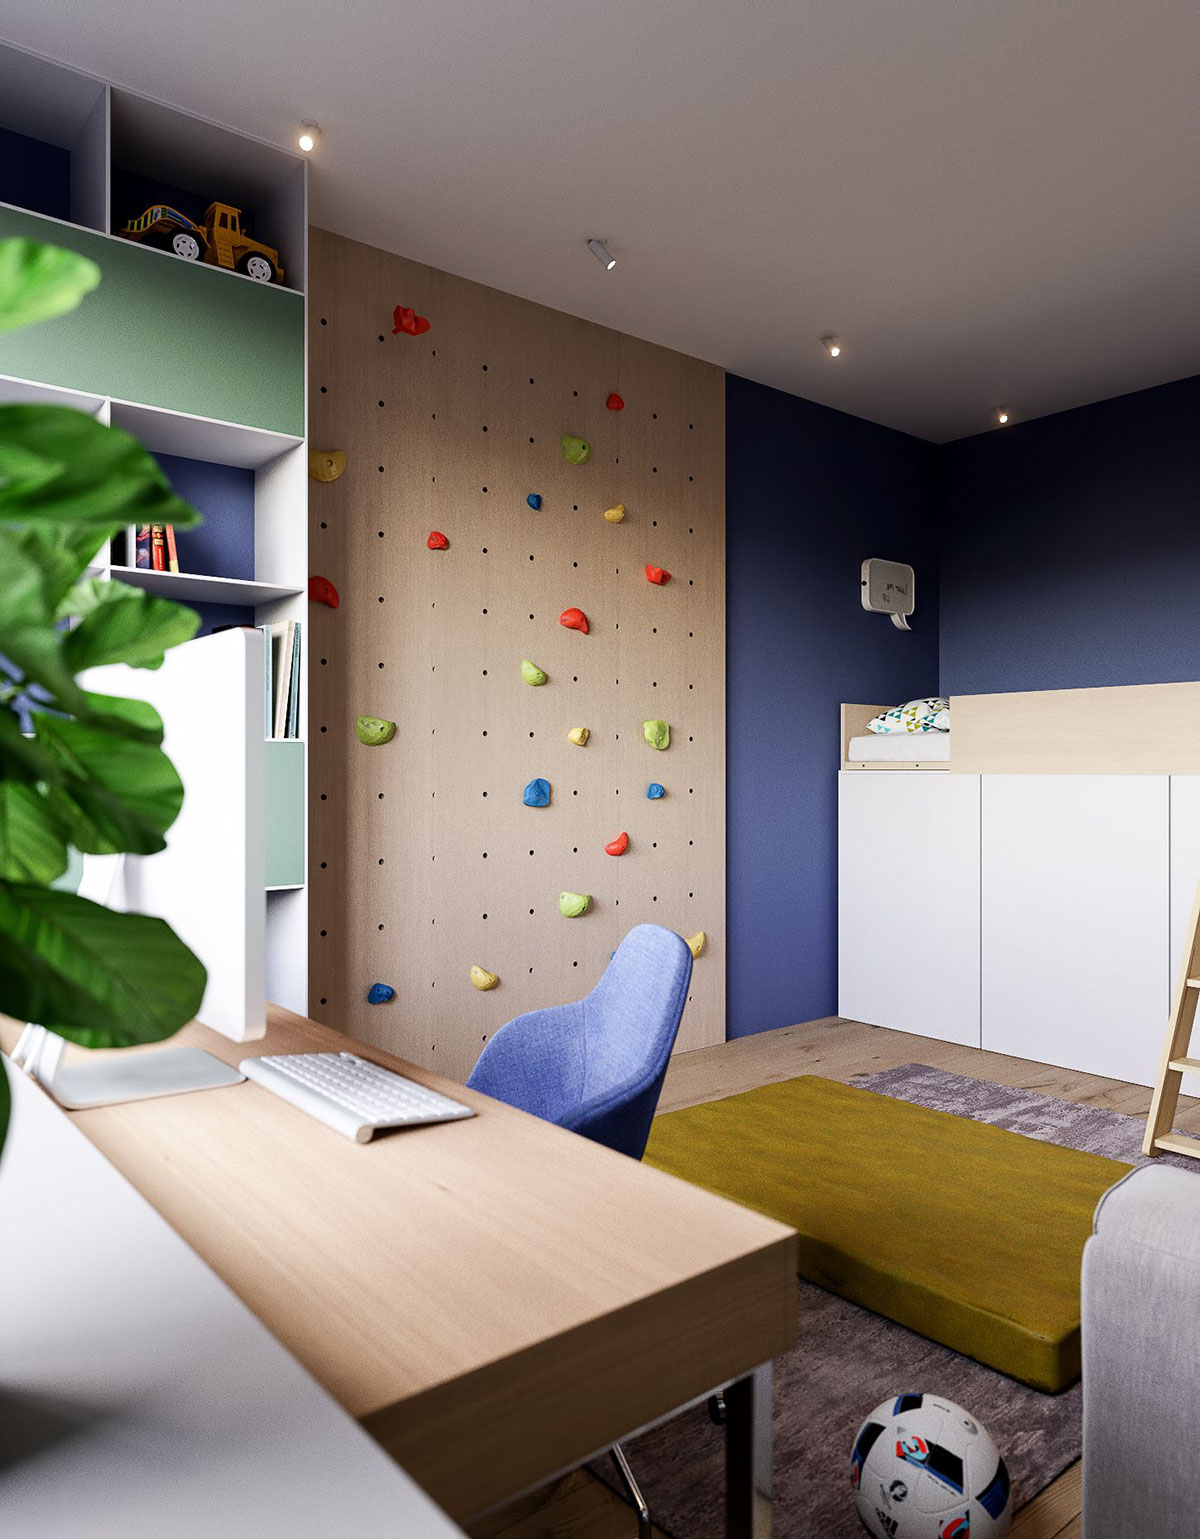 Little Boy Bedroom Rock Climbing Wall   3 Modern Minimalist Apartments For  Young Families